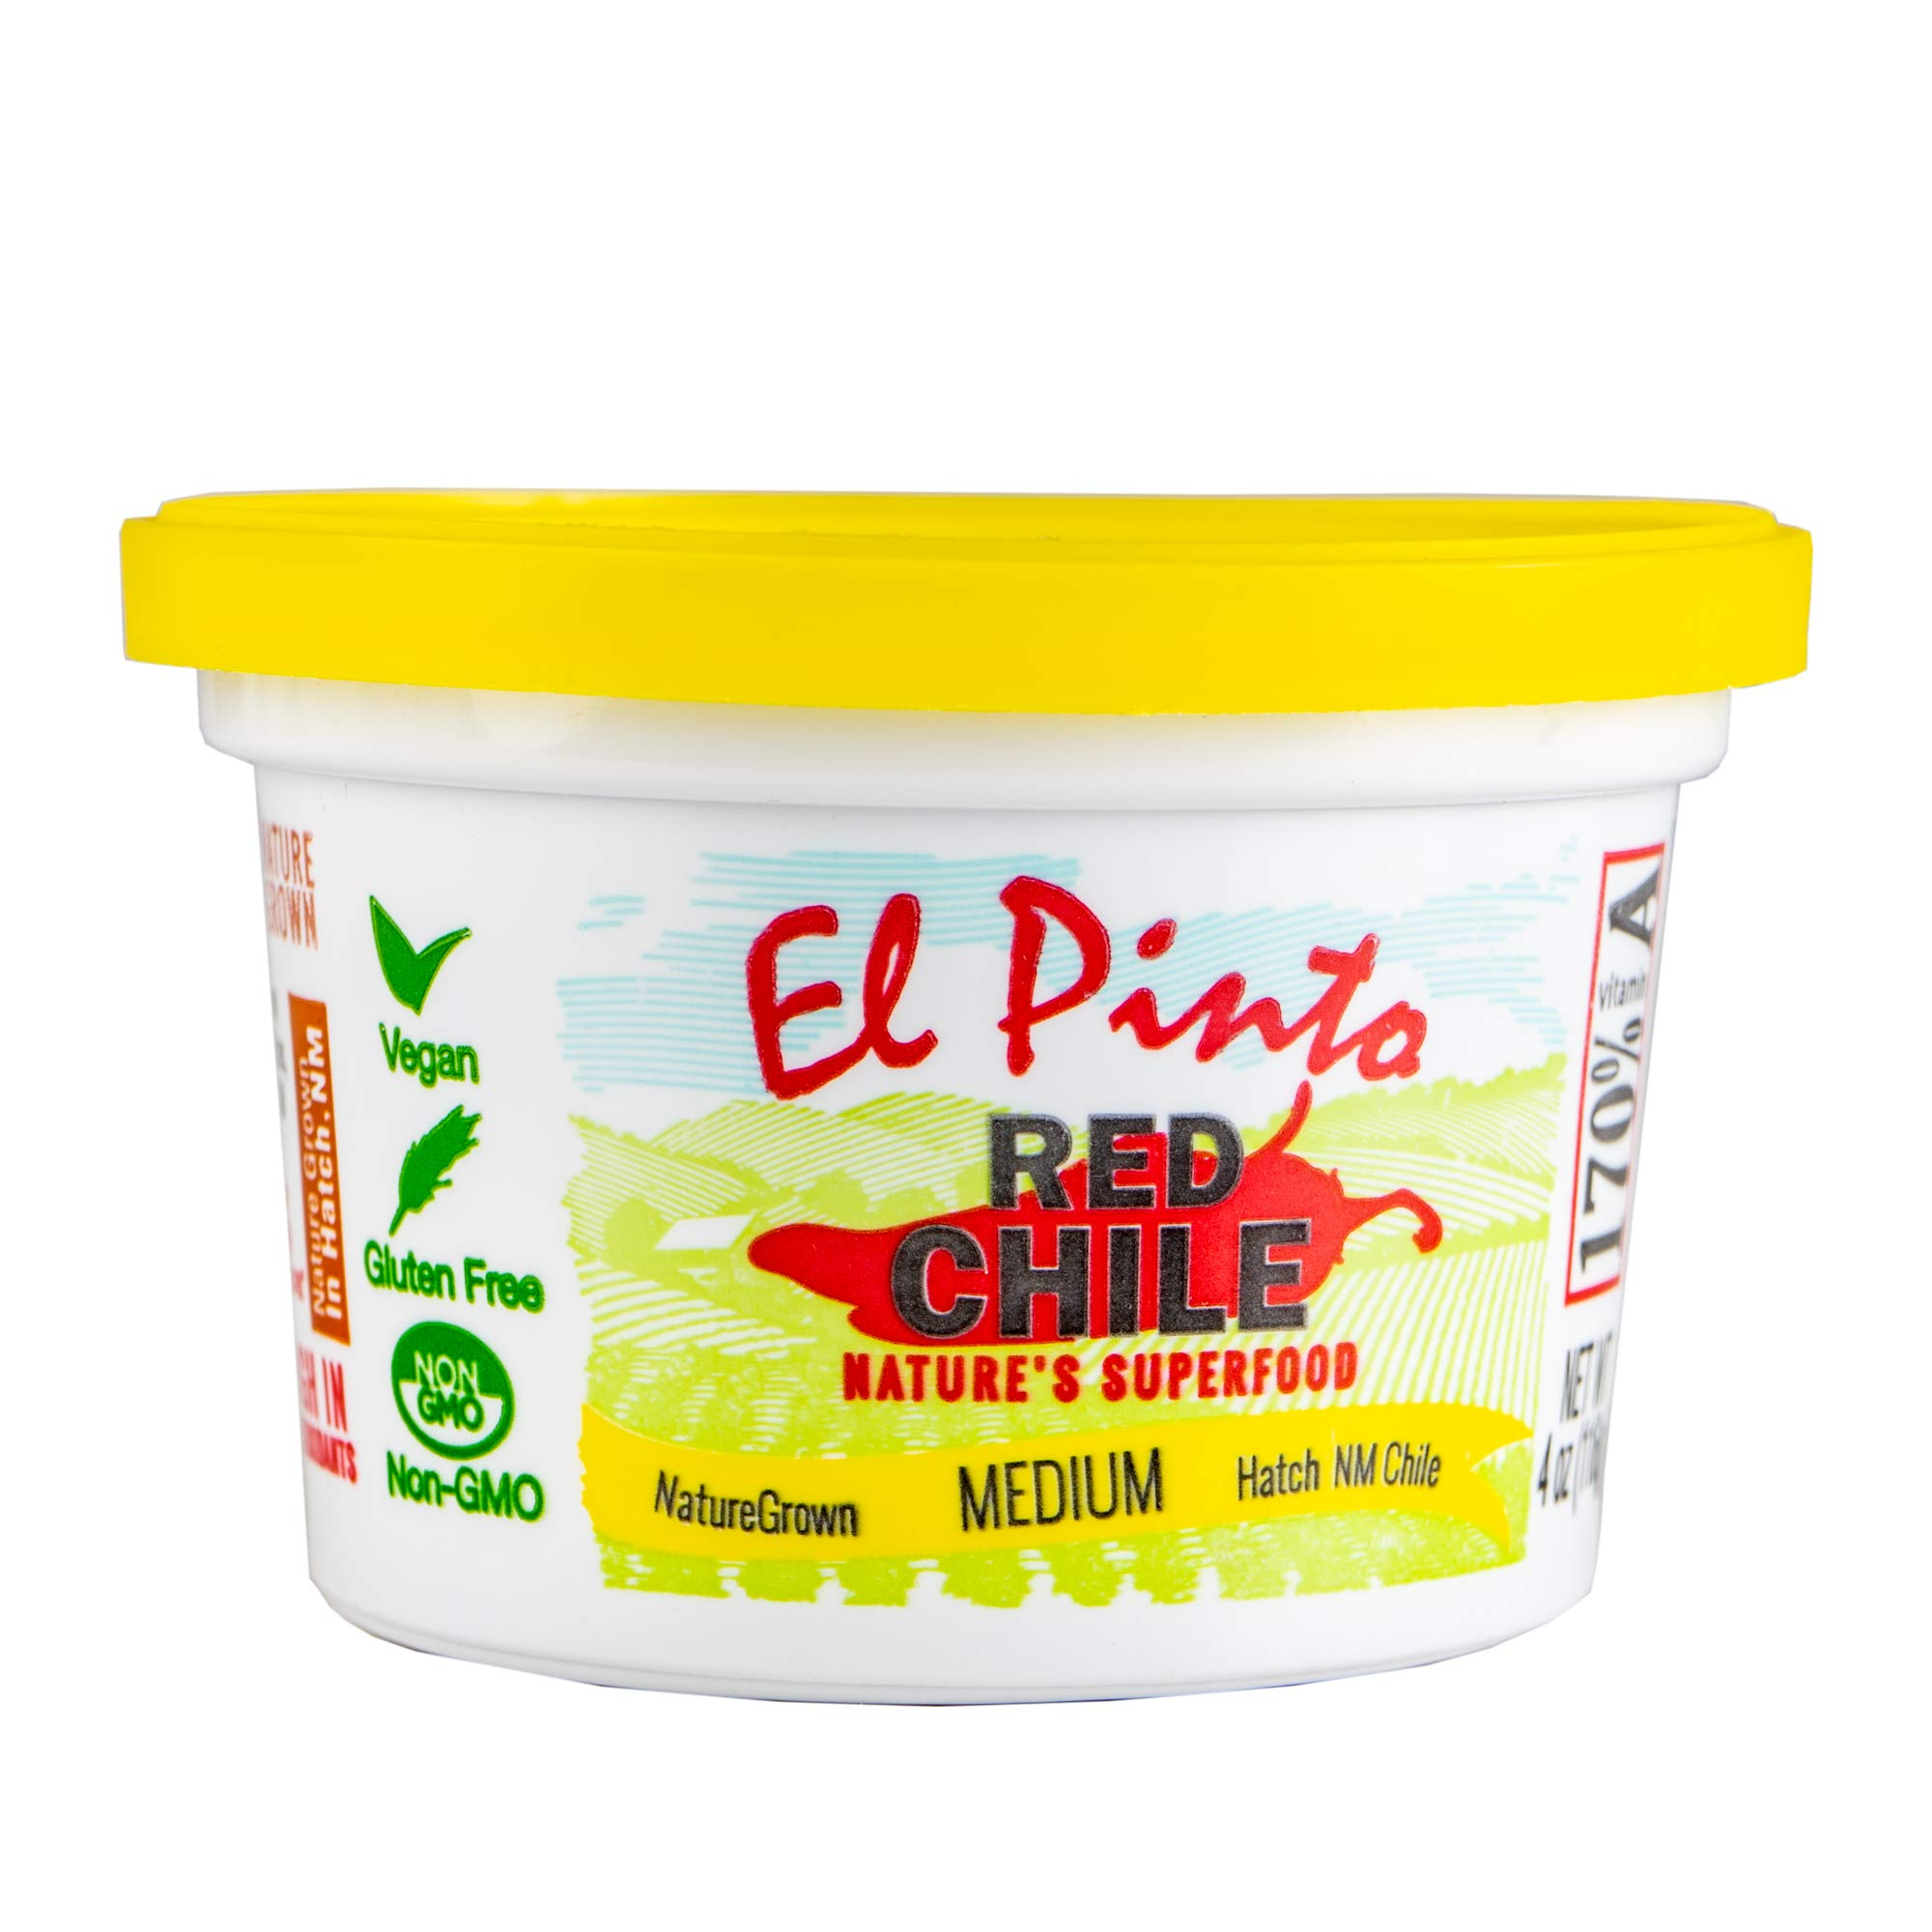 El Pinto - Medium Red Chile Sauce - (4 ounce, 18 Pack) Single Serve Portion Cups, Hatch New Mexico Chile, Nature Grown